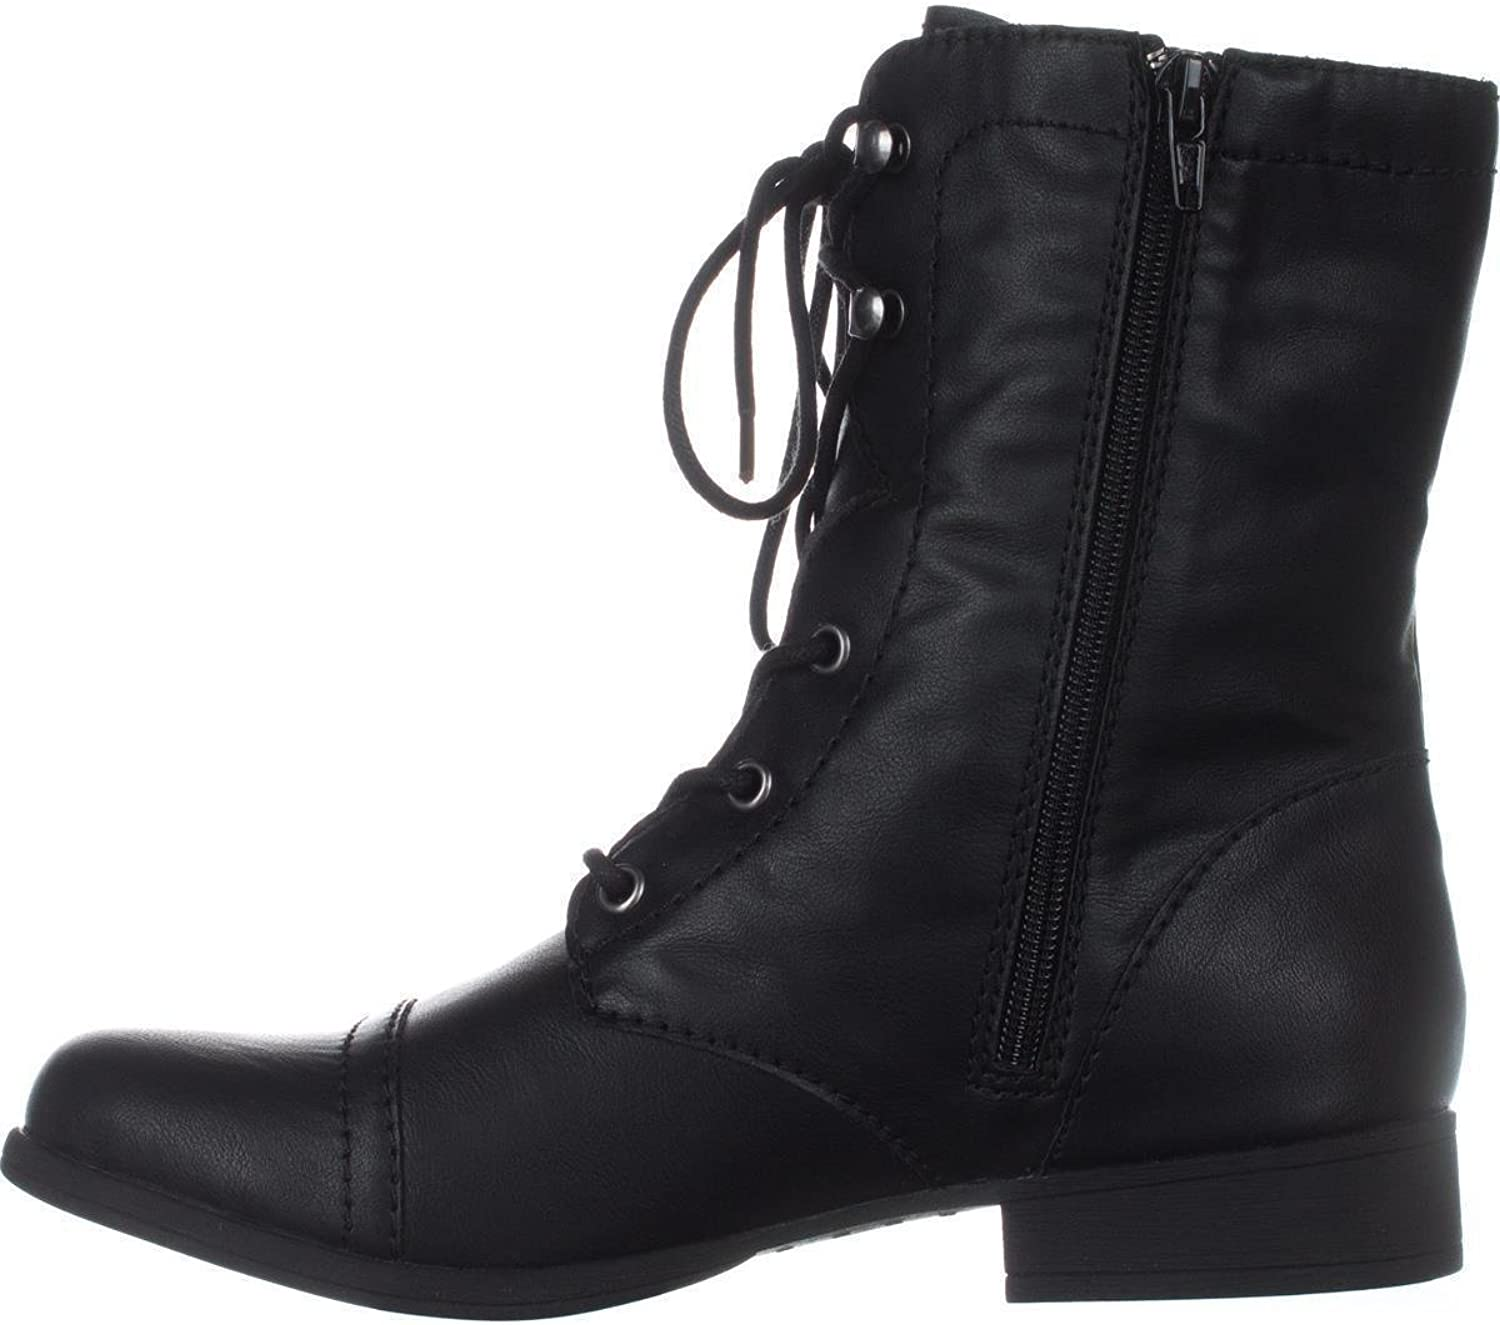 American Rag Womens Fionn Closed Toe Mid-Calf Combat Boots, Black, Size 7.0